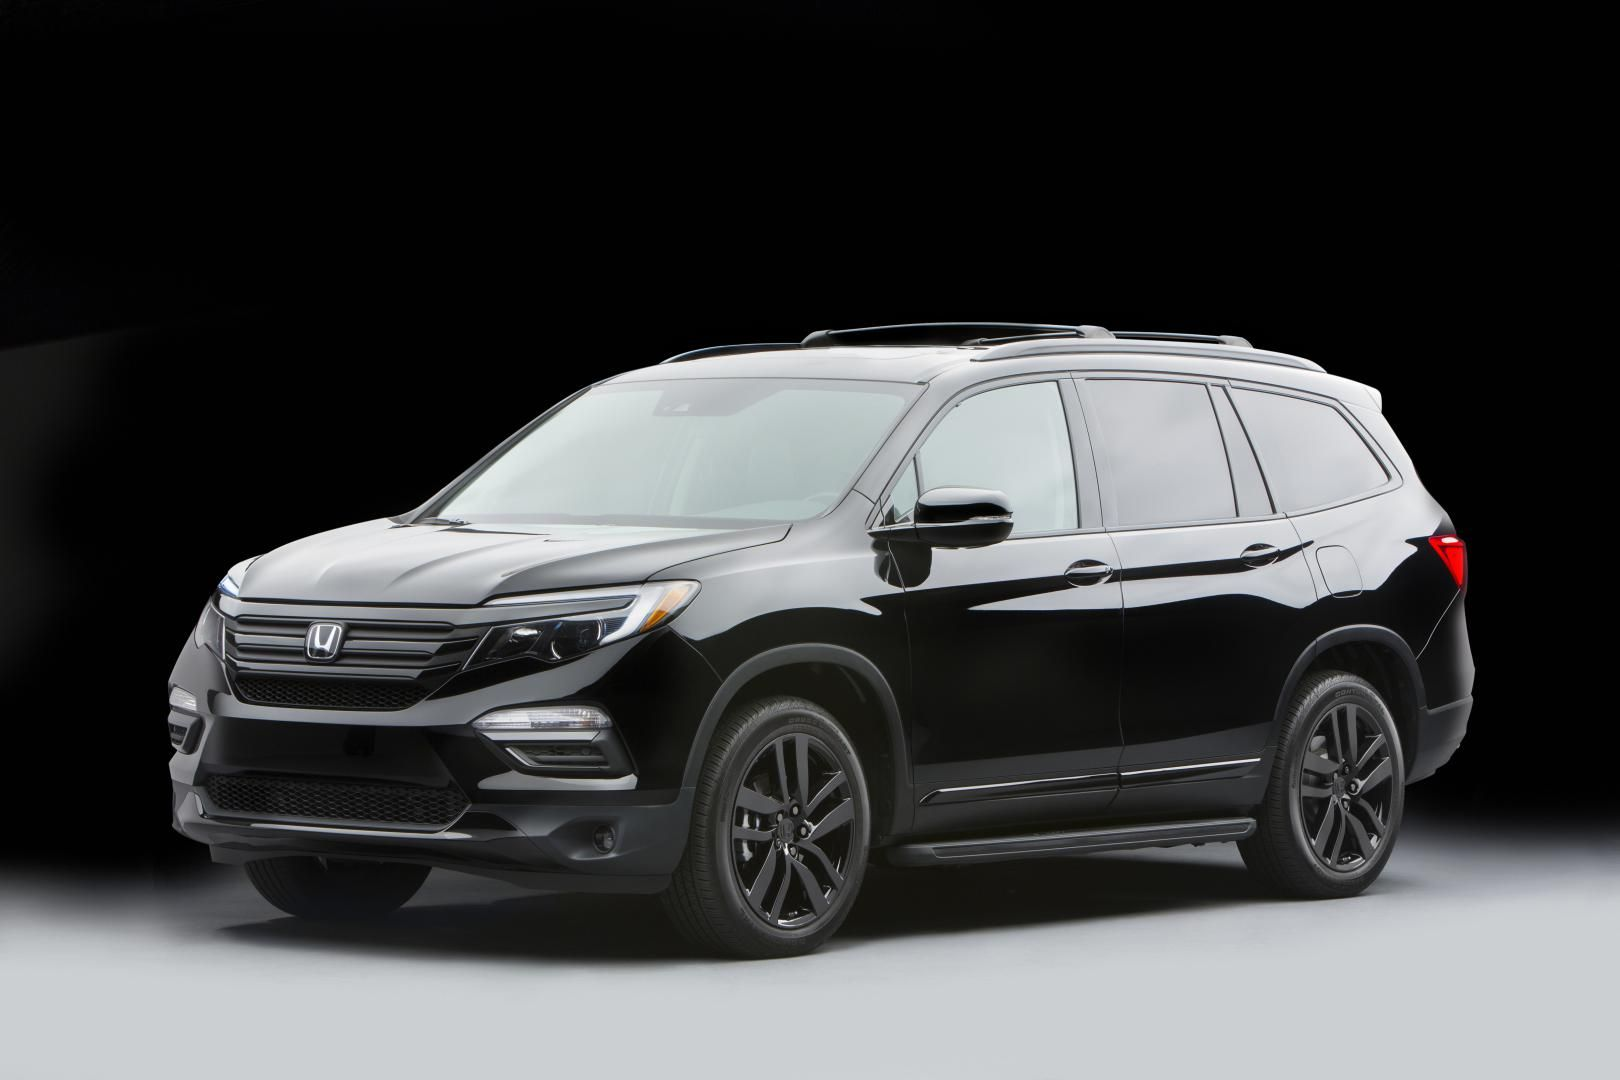 Black 2017 honda pilot honda pinterest honda pilot for Black honda pilot